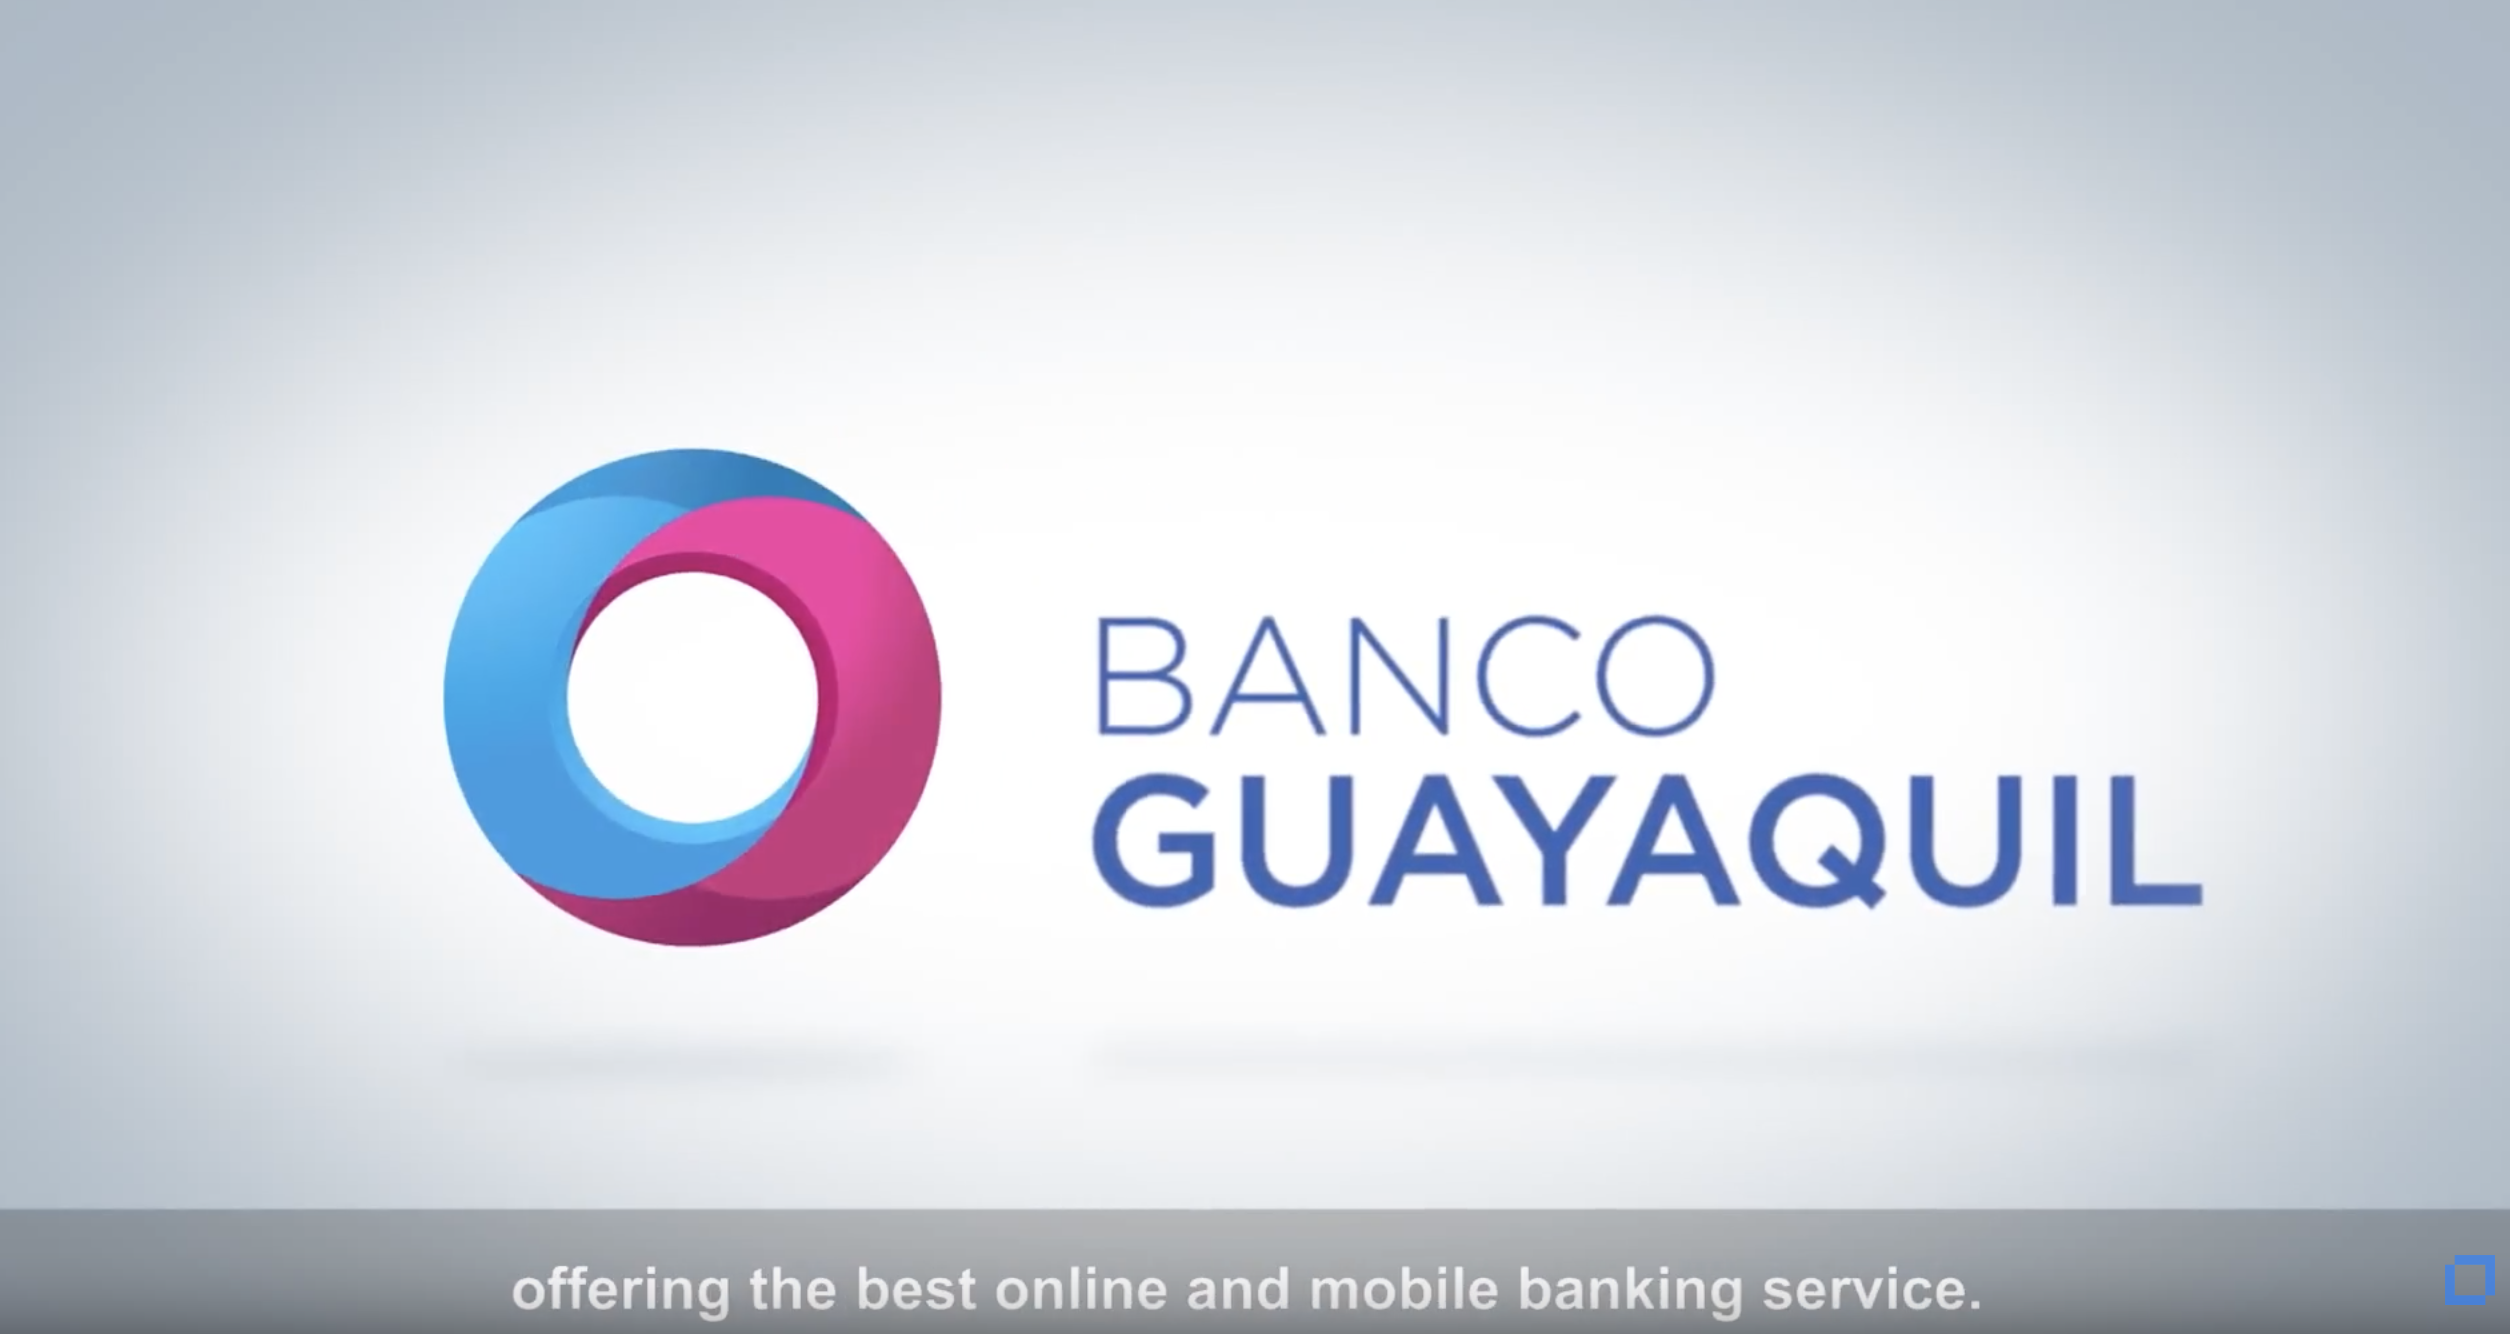 Banco Guayaquil Video